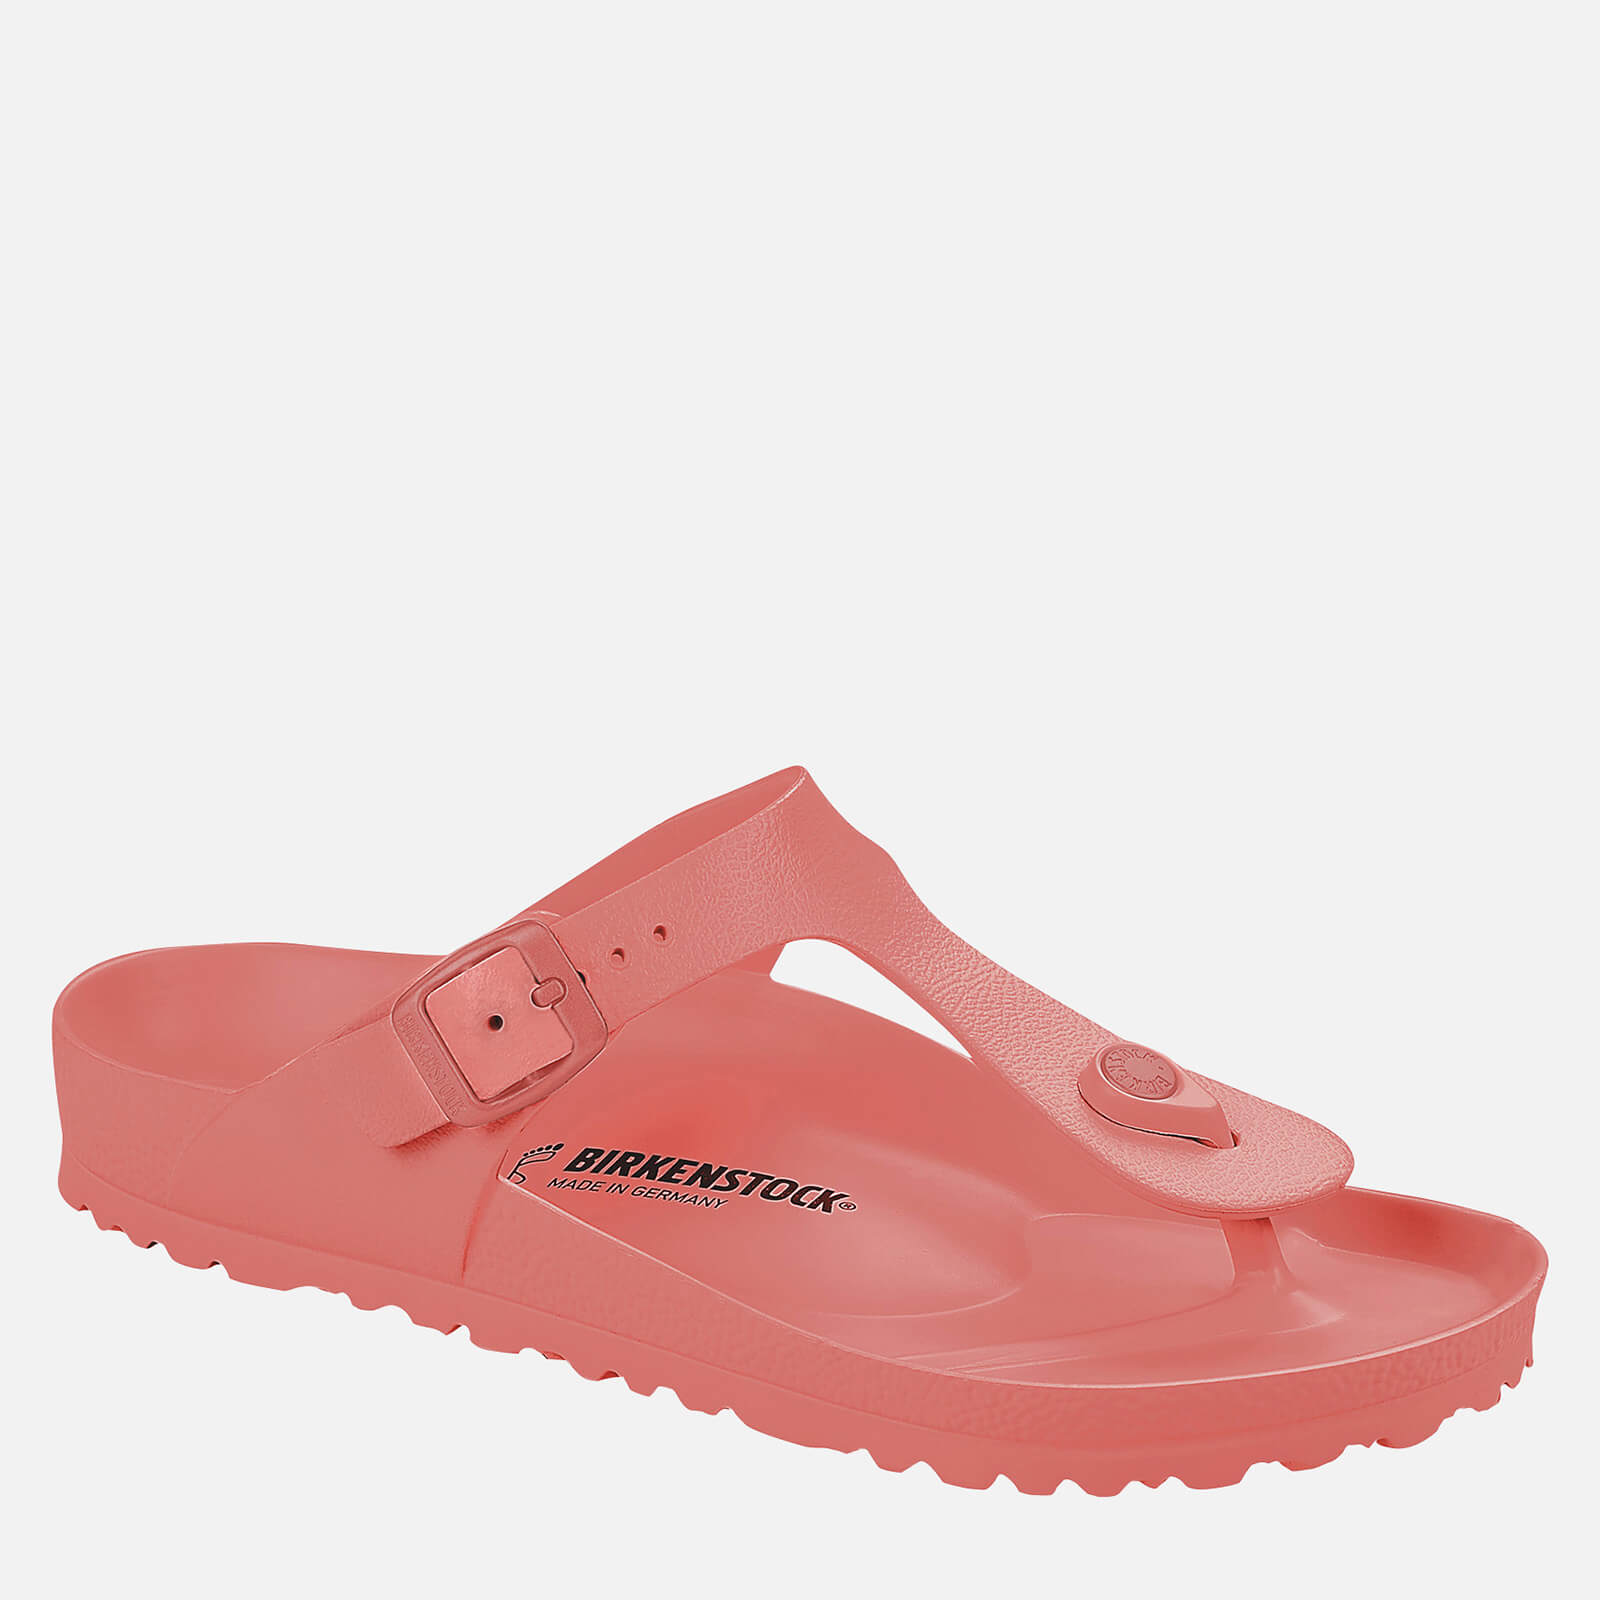 Click to view product details and reviews for Birkenstock Womens Gizeh Eva Toe Post Sandals Watermelon Eu 38 Uk 5.